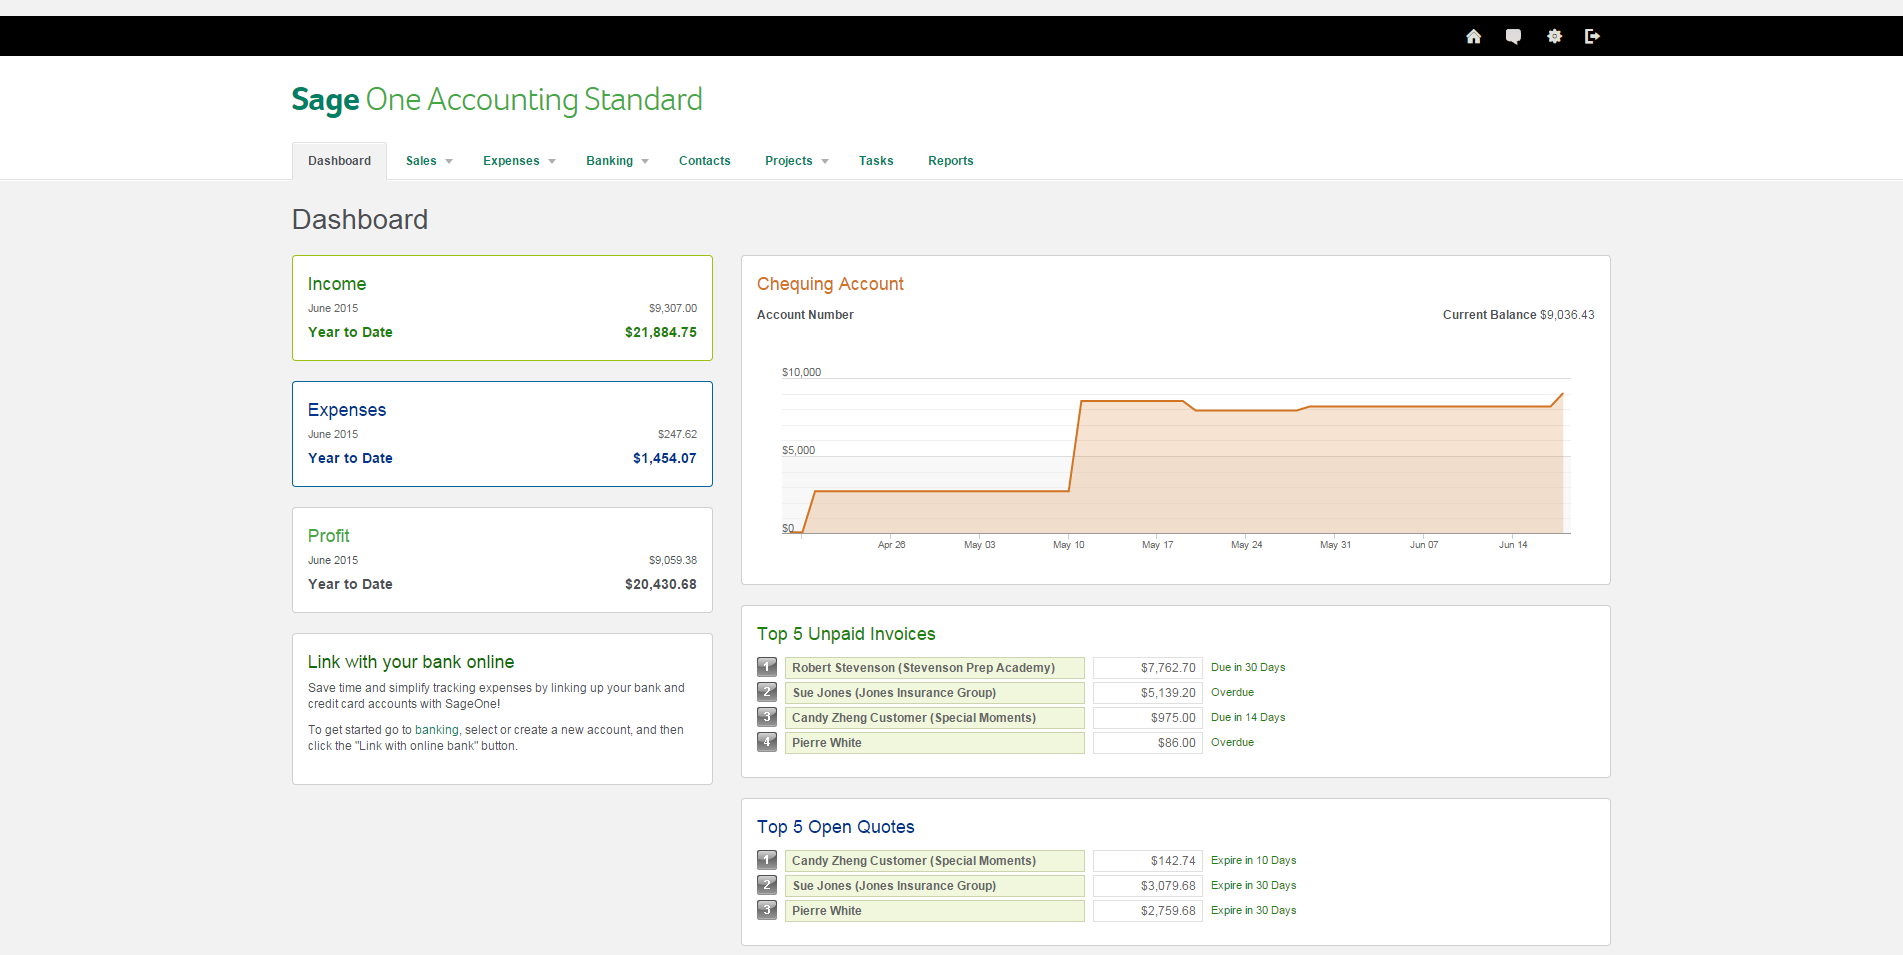 Sage One Sales Dashboard